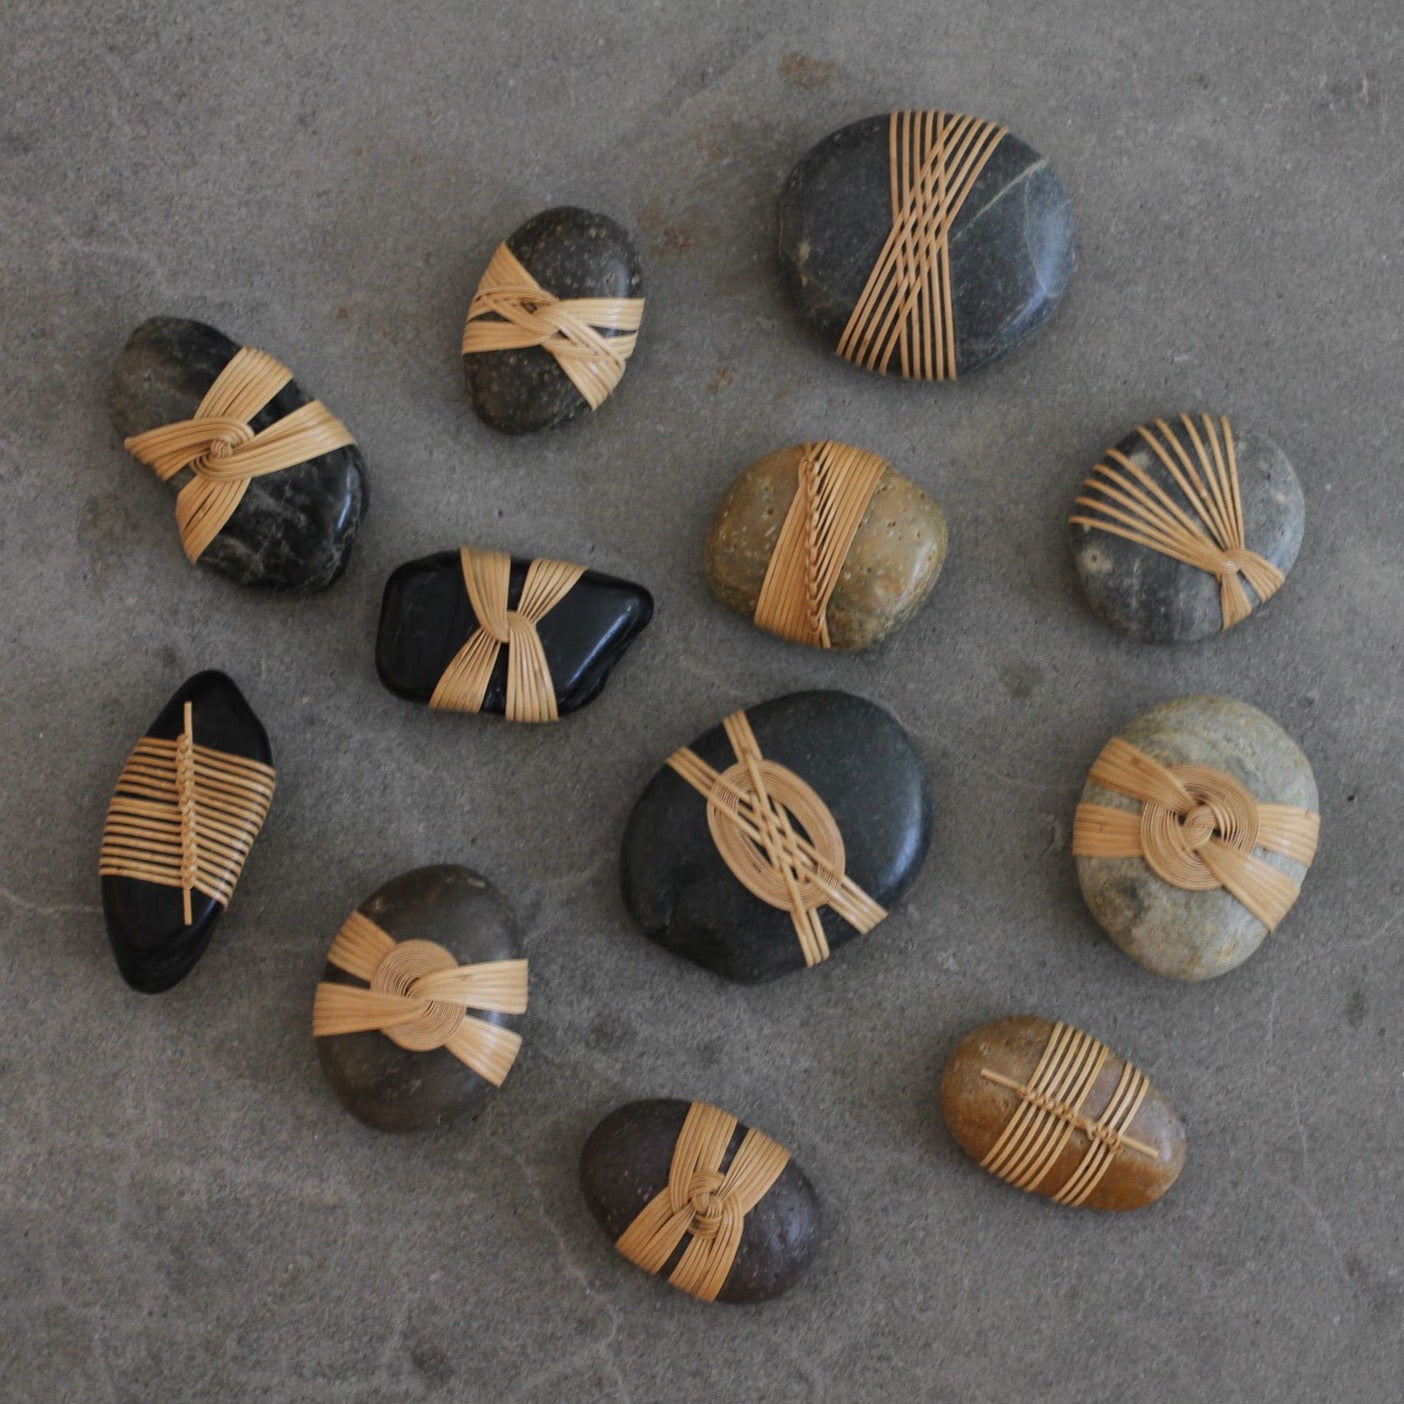 Wrapped Rocks | Shizu & Karen Okino